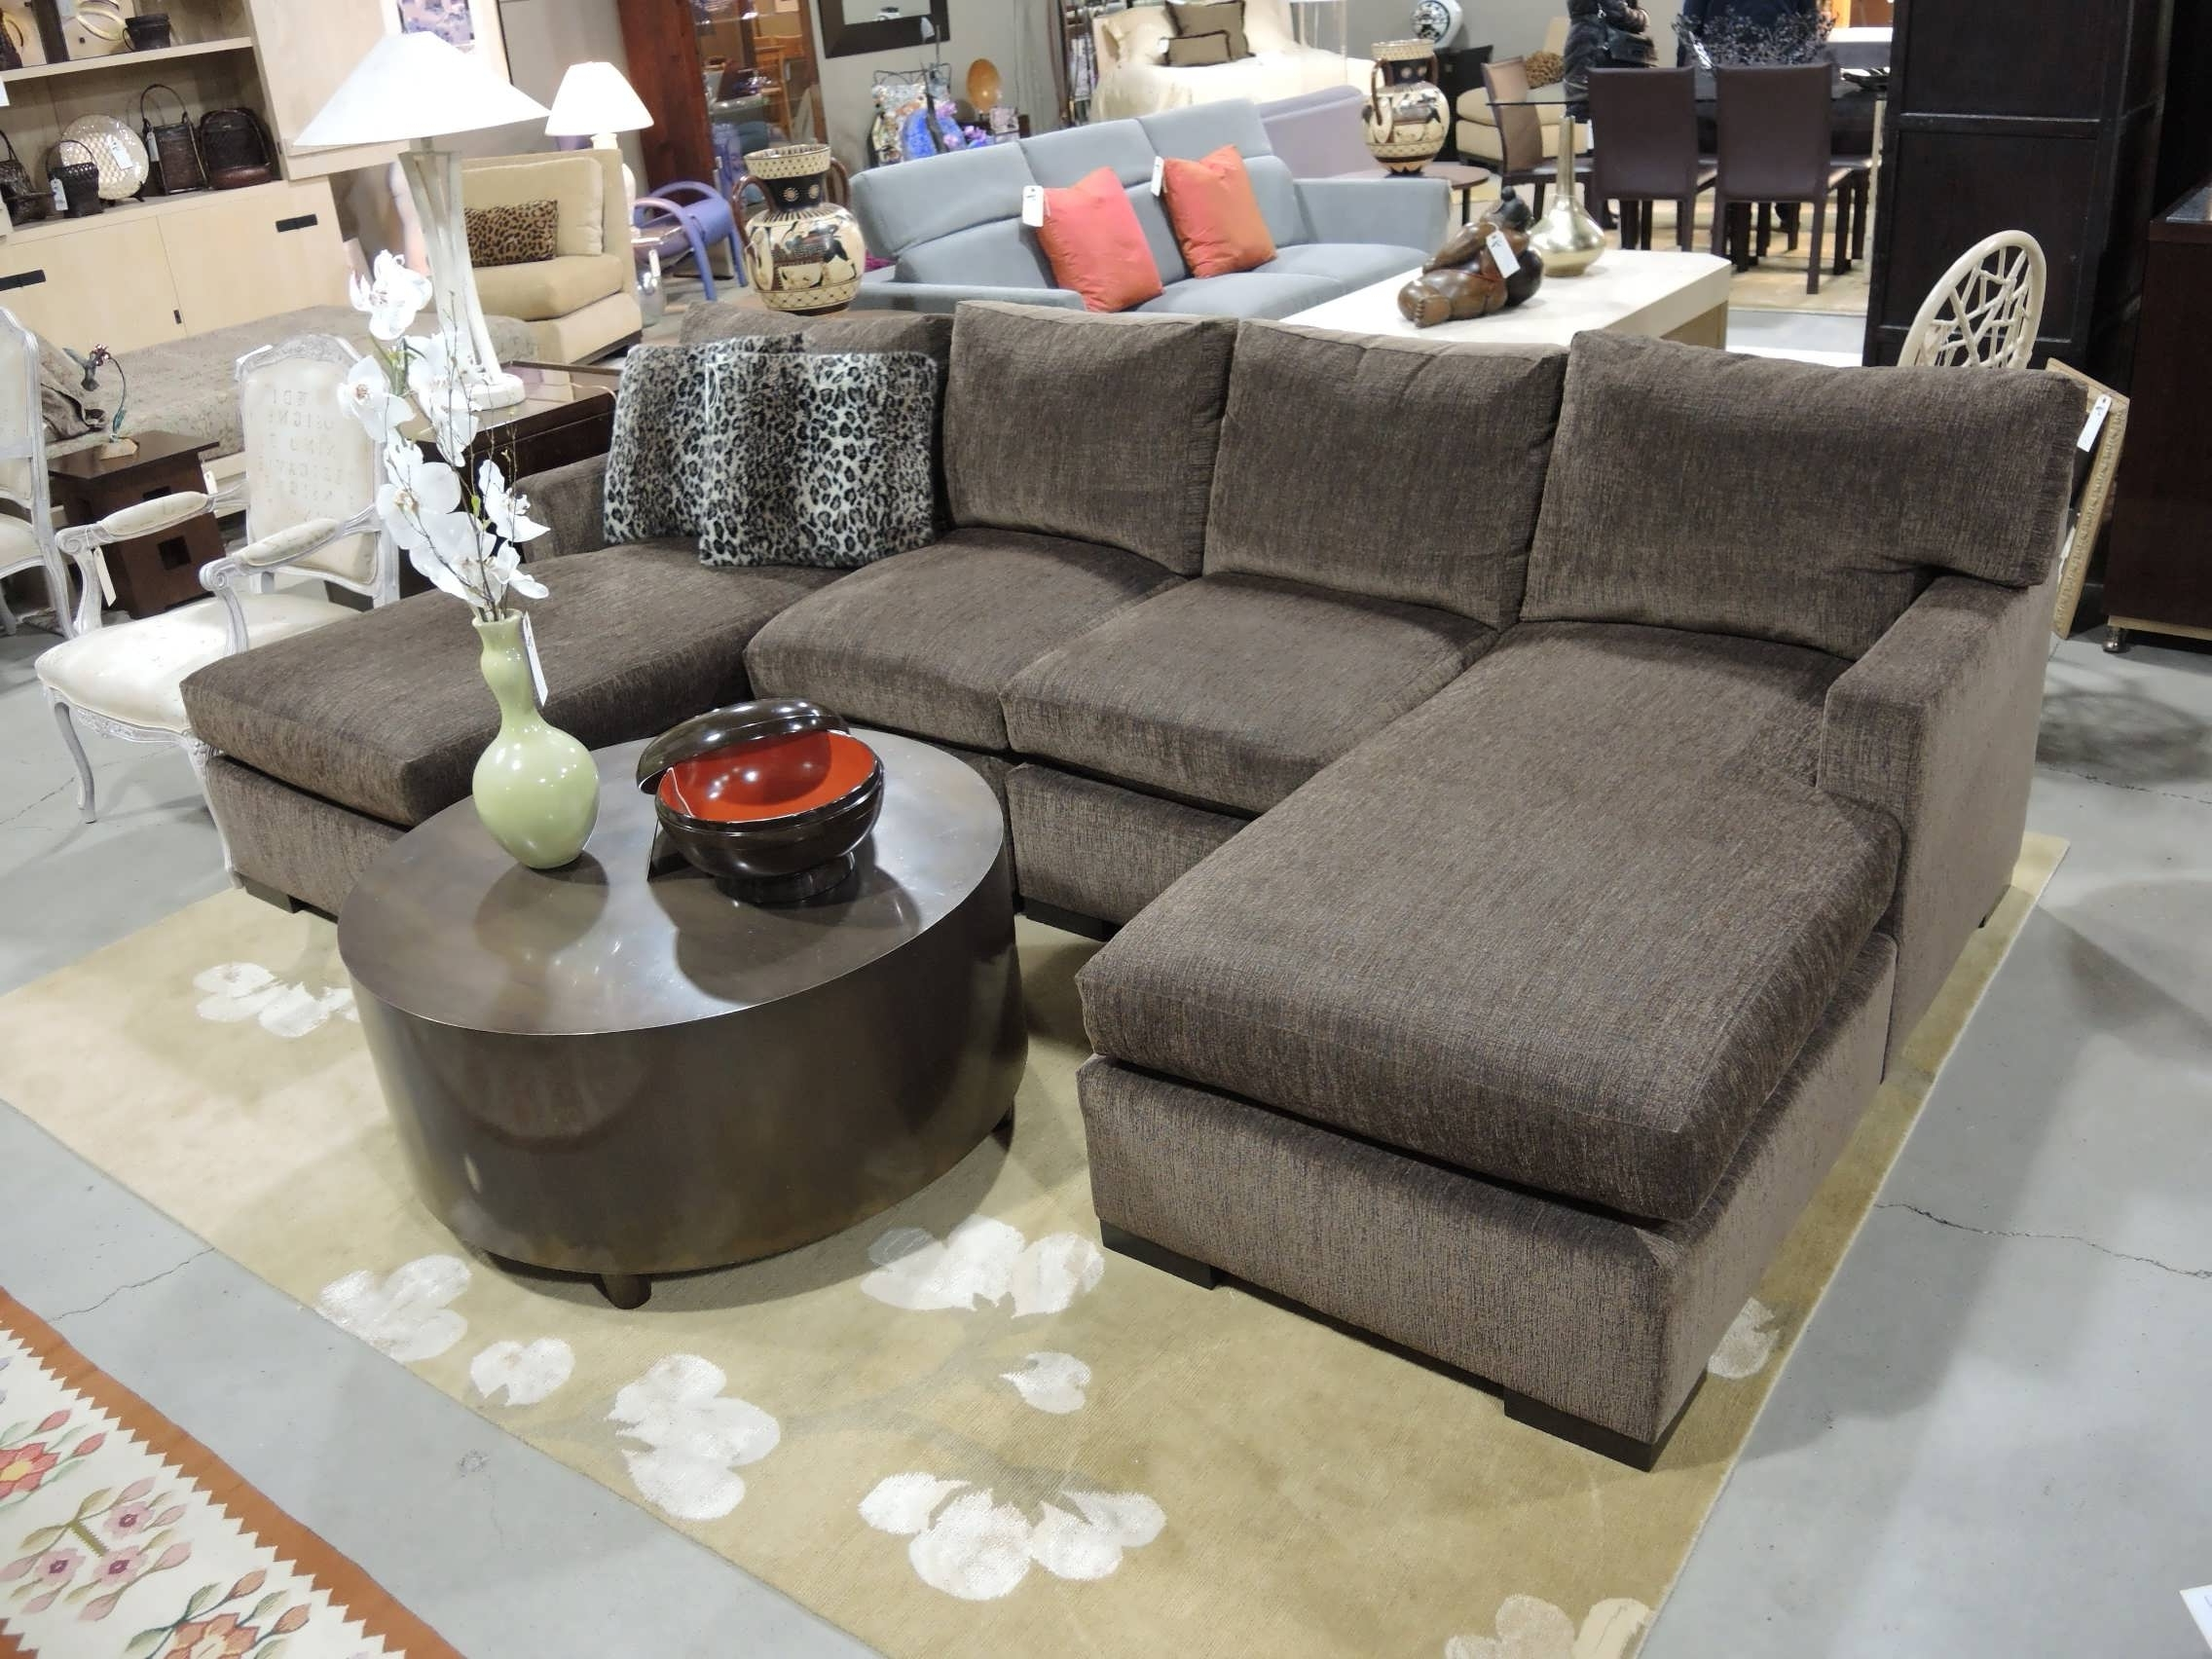 Popular Sofa : Chaise Lounge Couch Blue Leather Sectional Oversized Throughout Extra Wide Chaise Lounges (View 8 of 15)